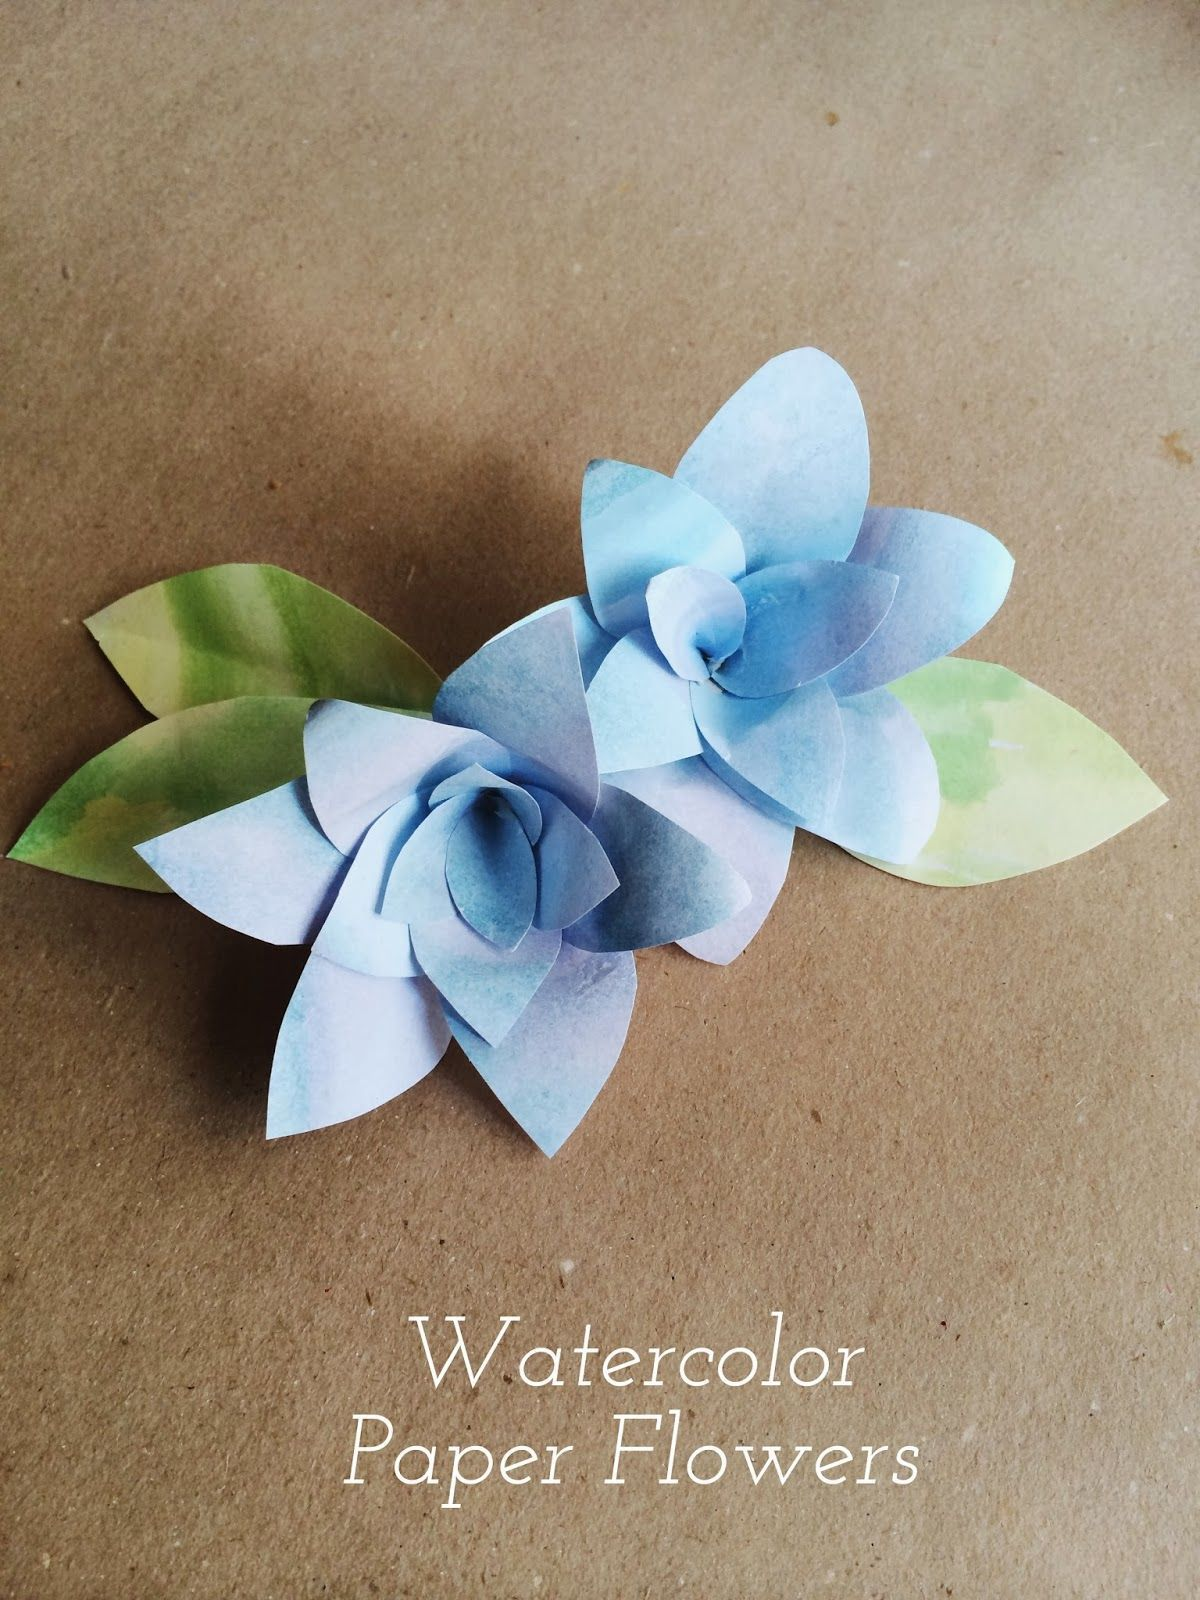 19 Cute DIY Paper Flower Ideas to Celebrate Spring #constructionpaperflowers 19 Cute DIY Paper Flower Ideas to Celebrate Spring - Style Motivation #constructionpaperflowers 19 Cute DIY Paper Flower Ideas to Celebrate Spring #constructionpaperflowers 19 Cute DIY Paper Flower Ideas to Celebrate Spring - Style Motivation #constructionpaperflowers